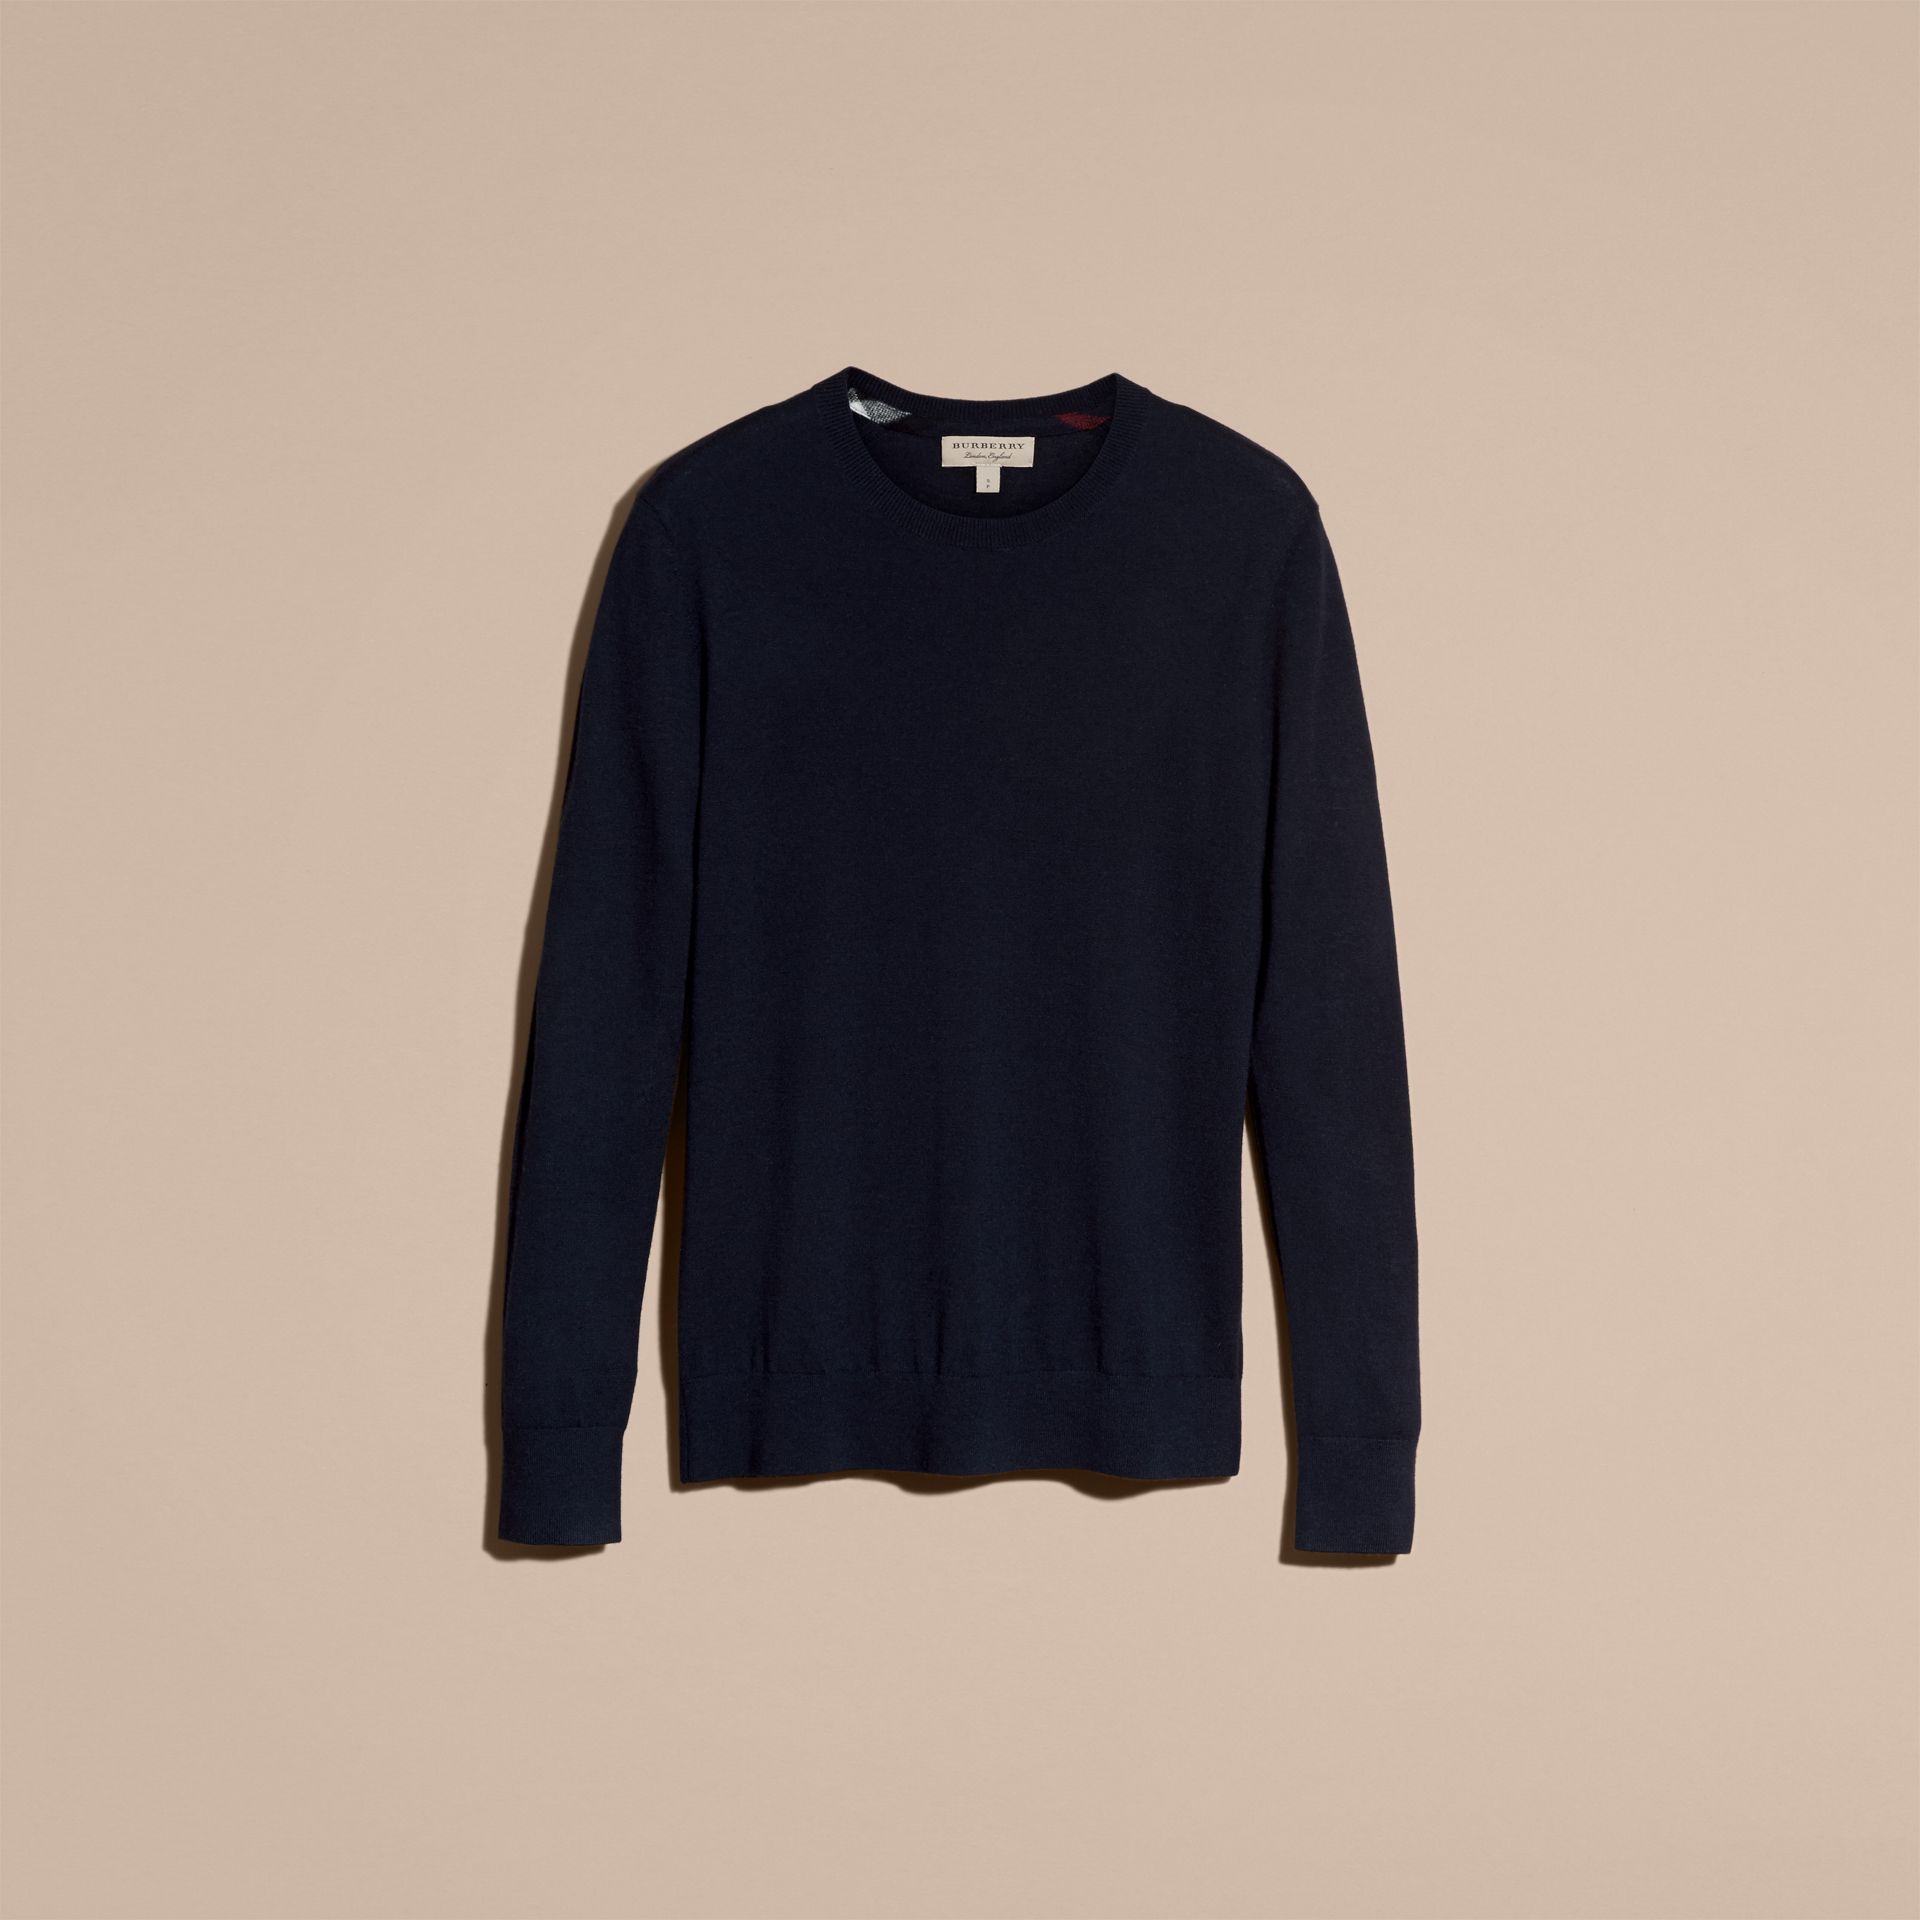 Lightweight Crew Neck Cashmere Sweater with Check Trim in Navy - Men | Burberry - gallery image 4